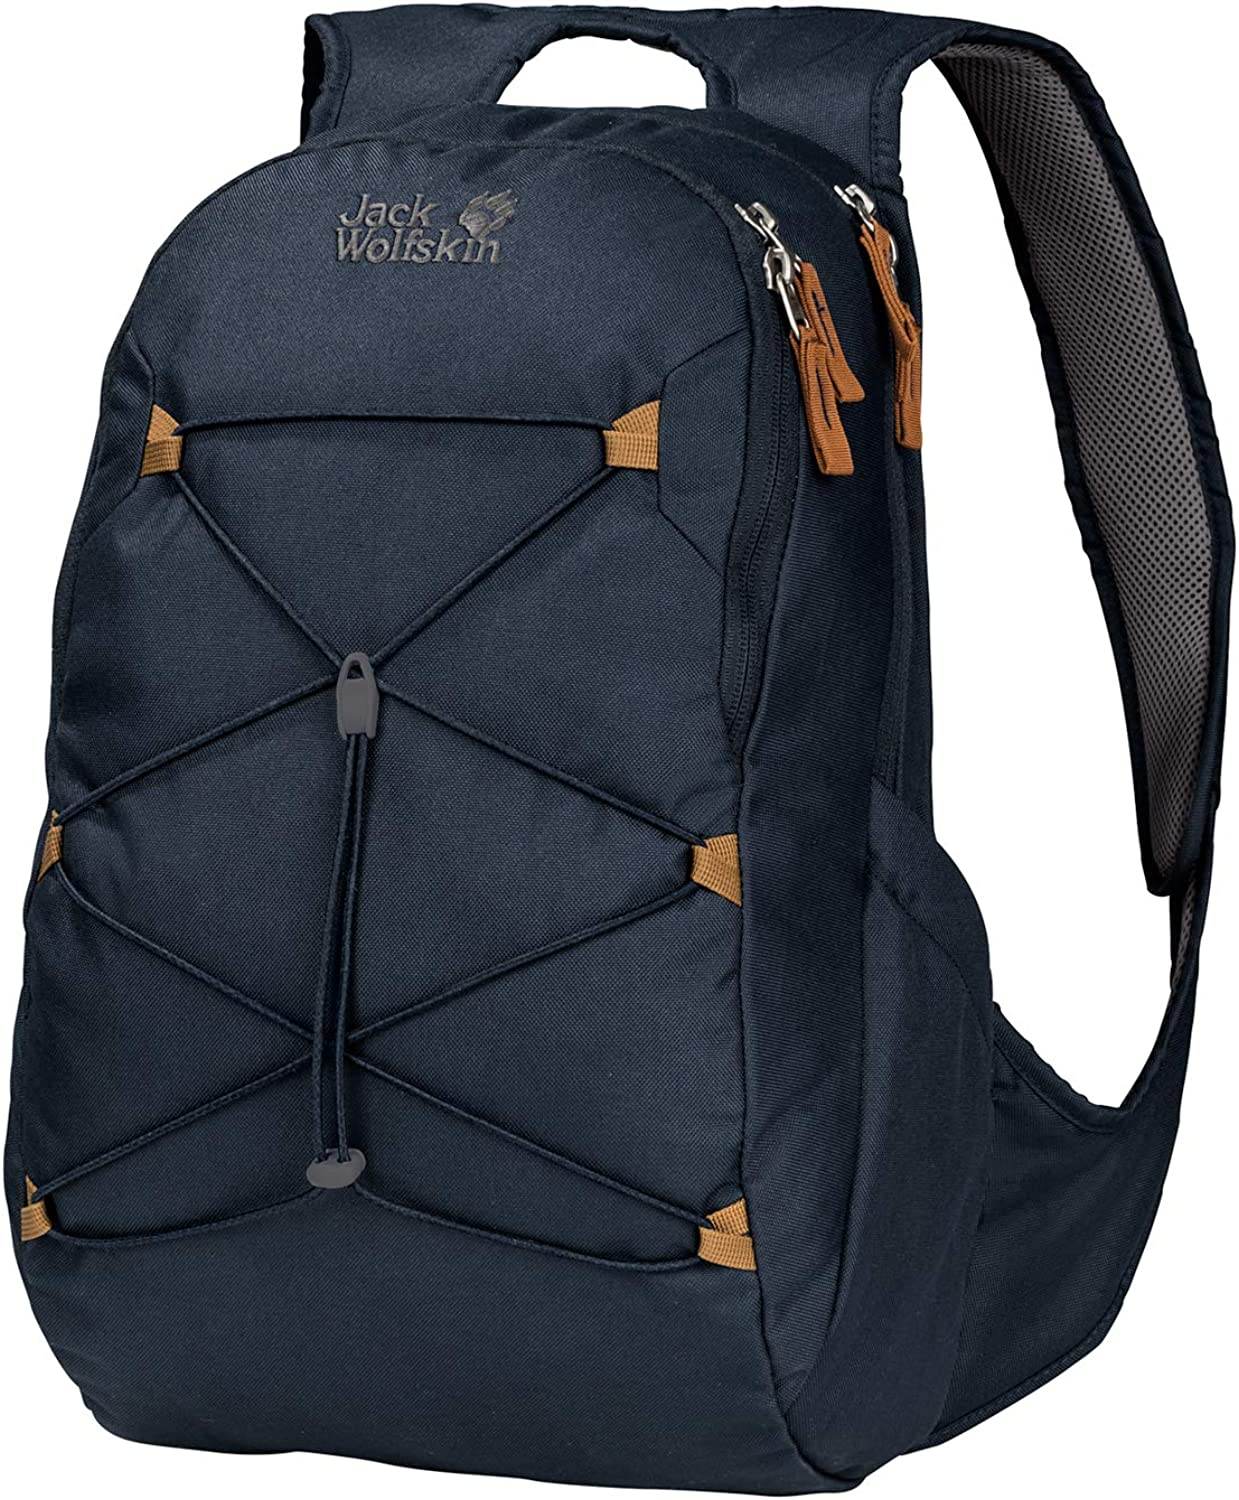 Jack Wolfskin Savona 20L Small Women's Daypack with Bungee Cord, Night bluee